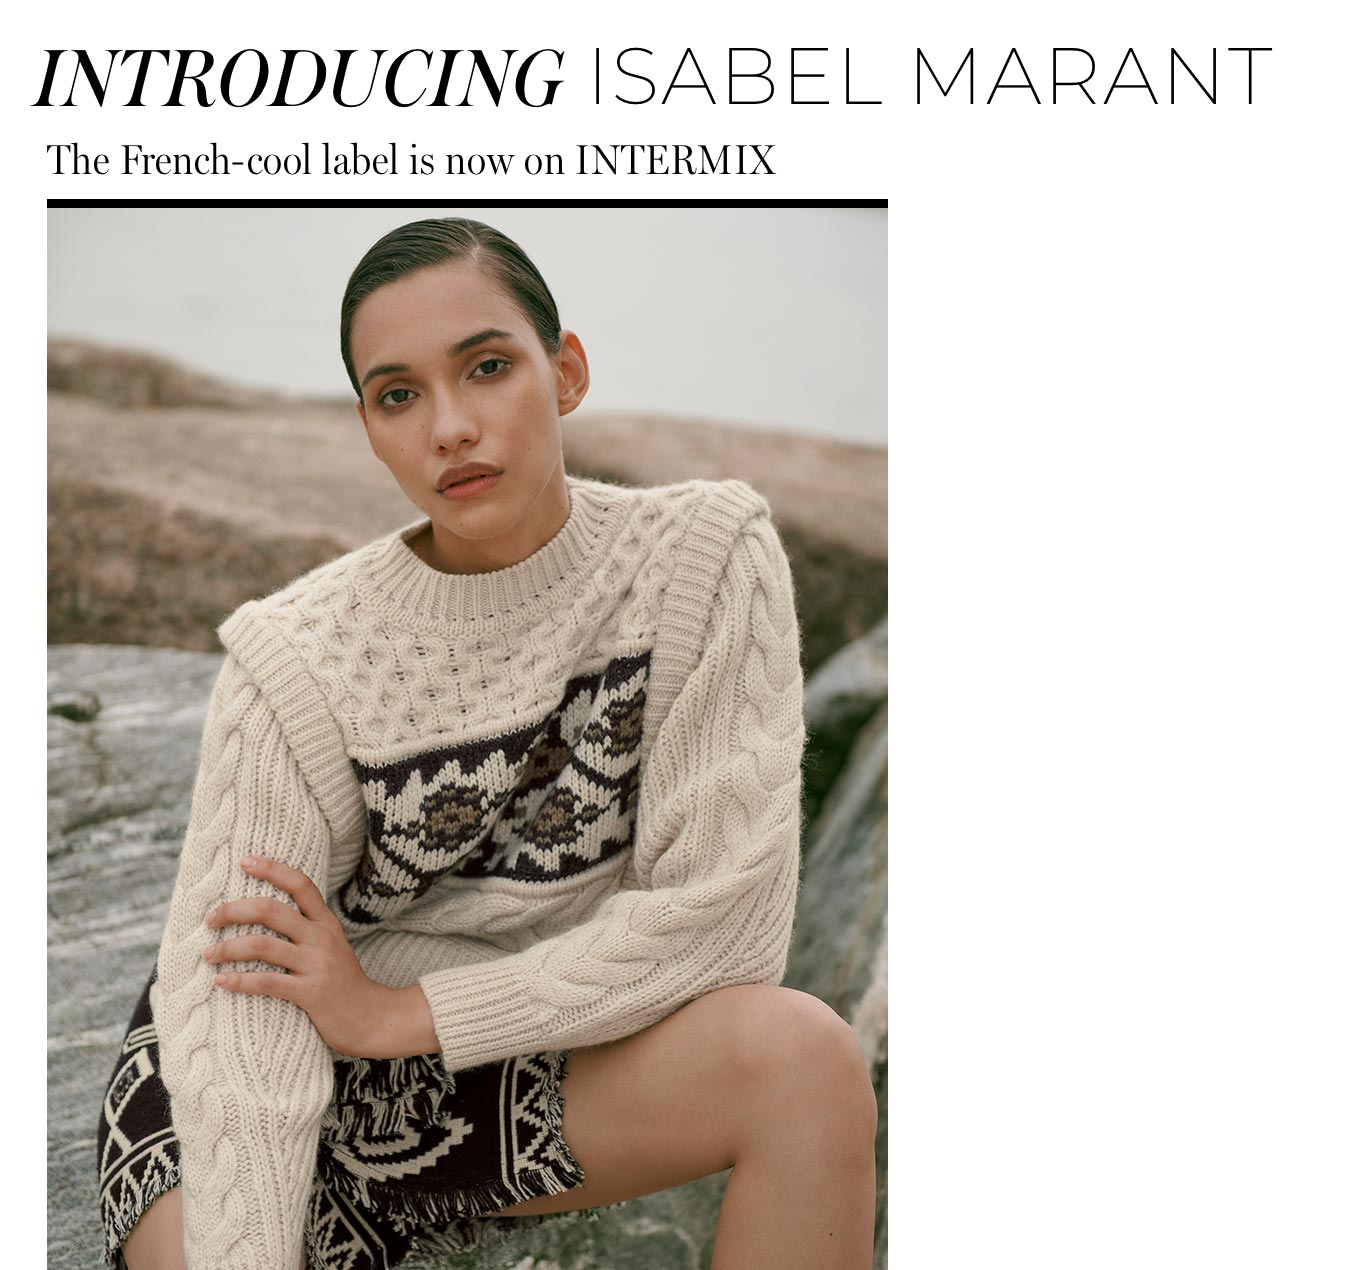 INTRODUCING Isabel Marant The French-cool label is now on INTERMIX